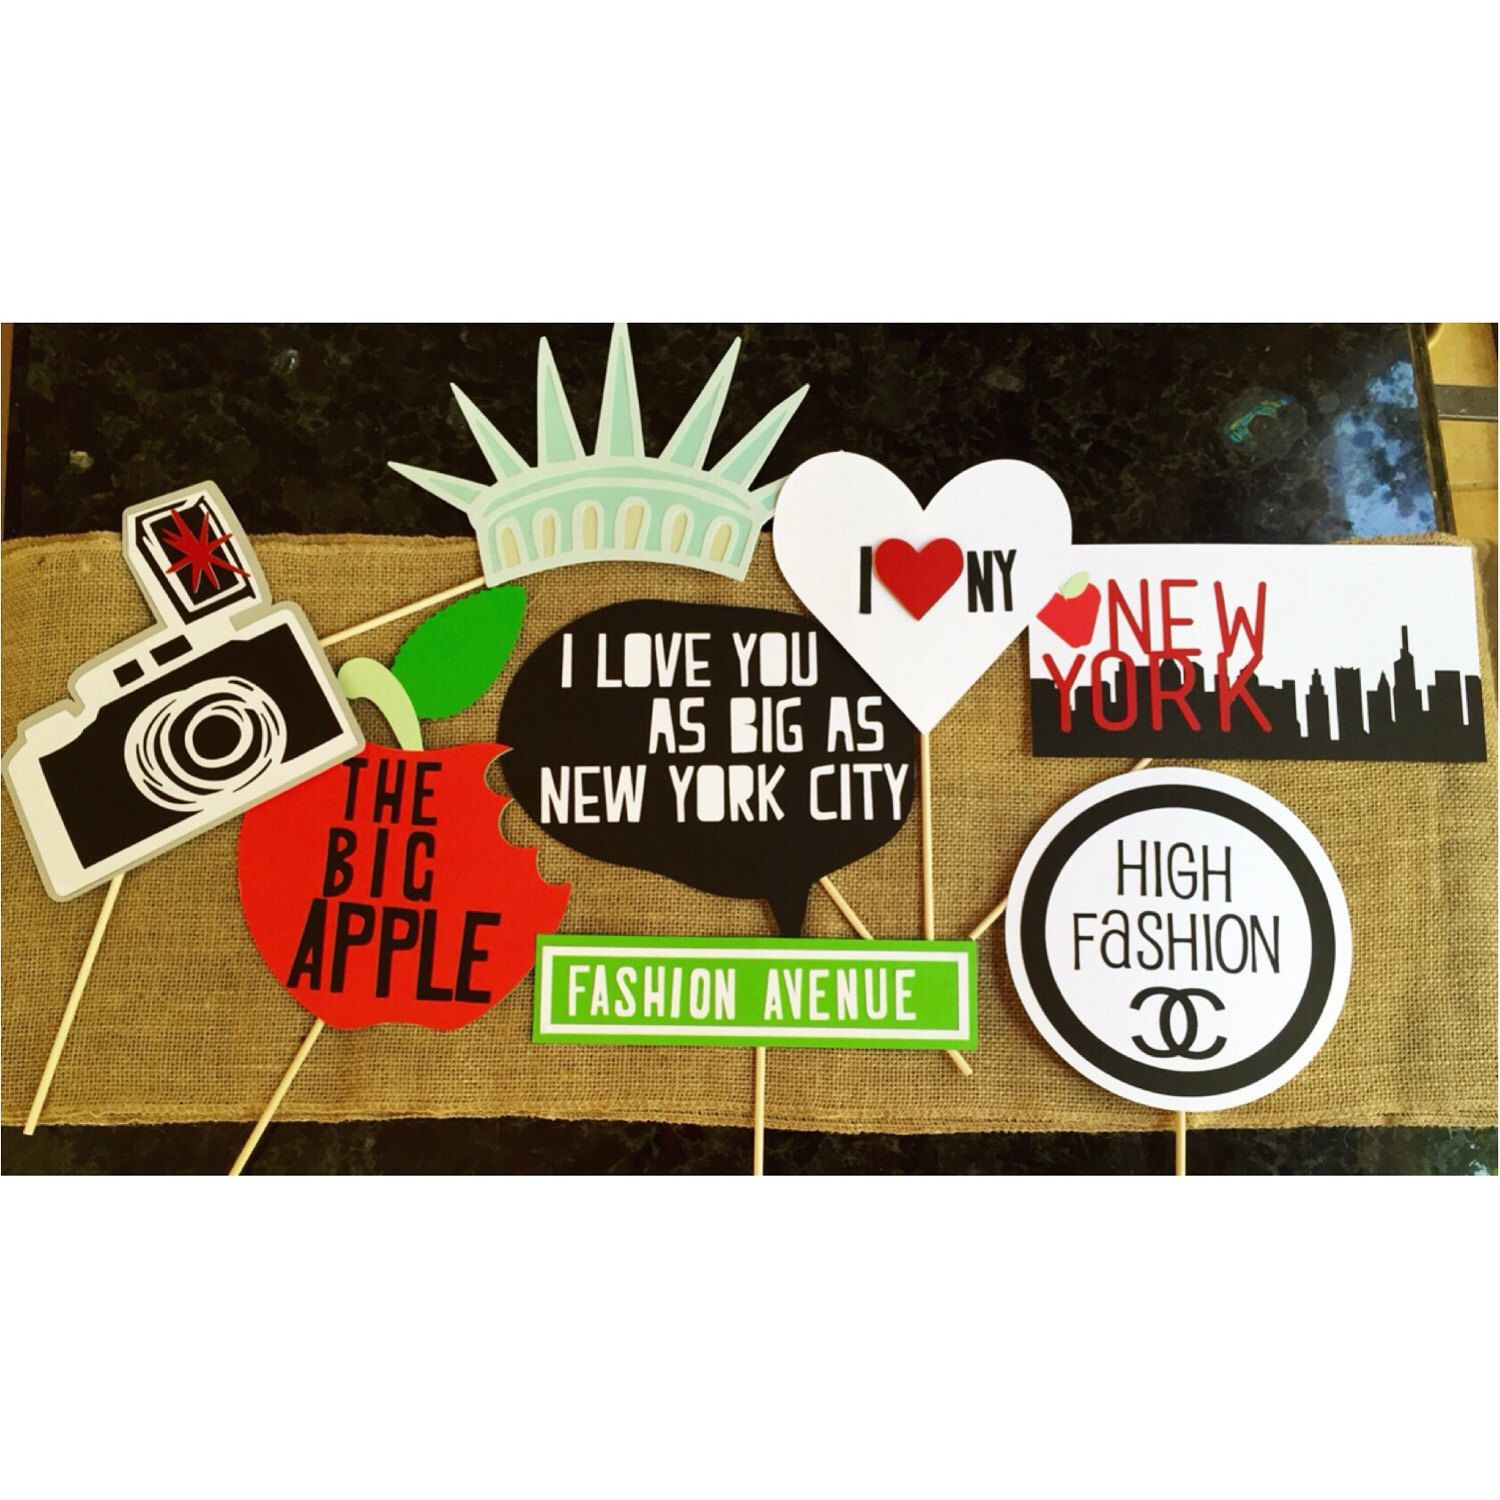 New York themed photo booth props by SunshineWithJess on Etsy https://www.etsy.com/listing/243499253/new-york-themed-photo-booth-props